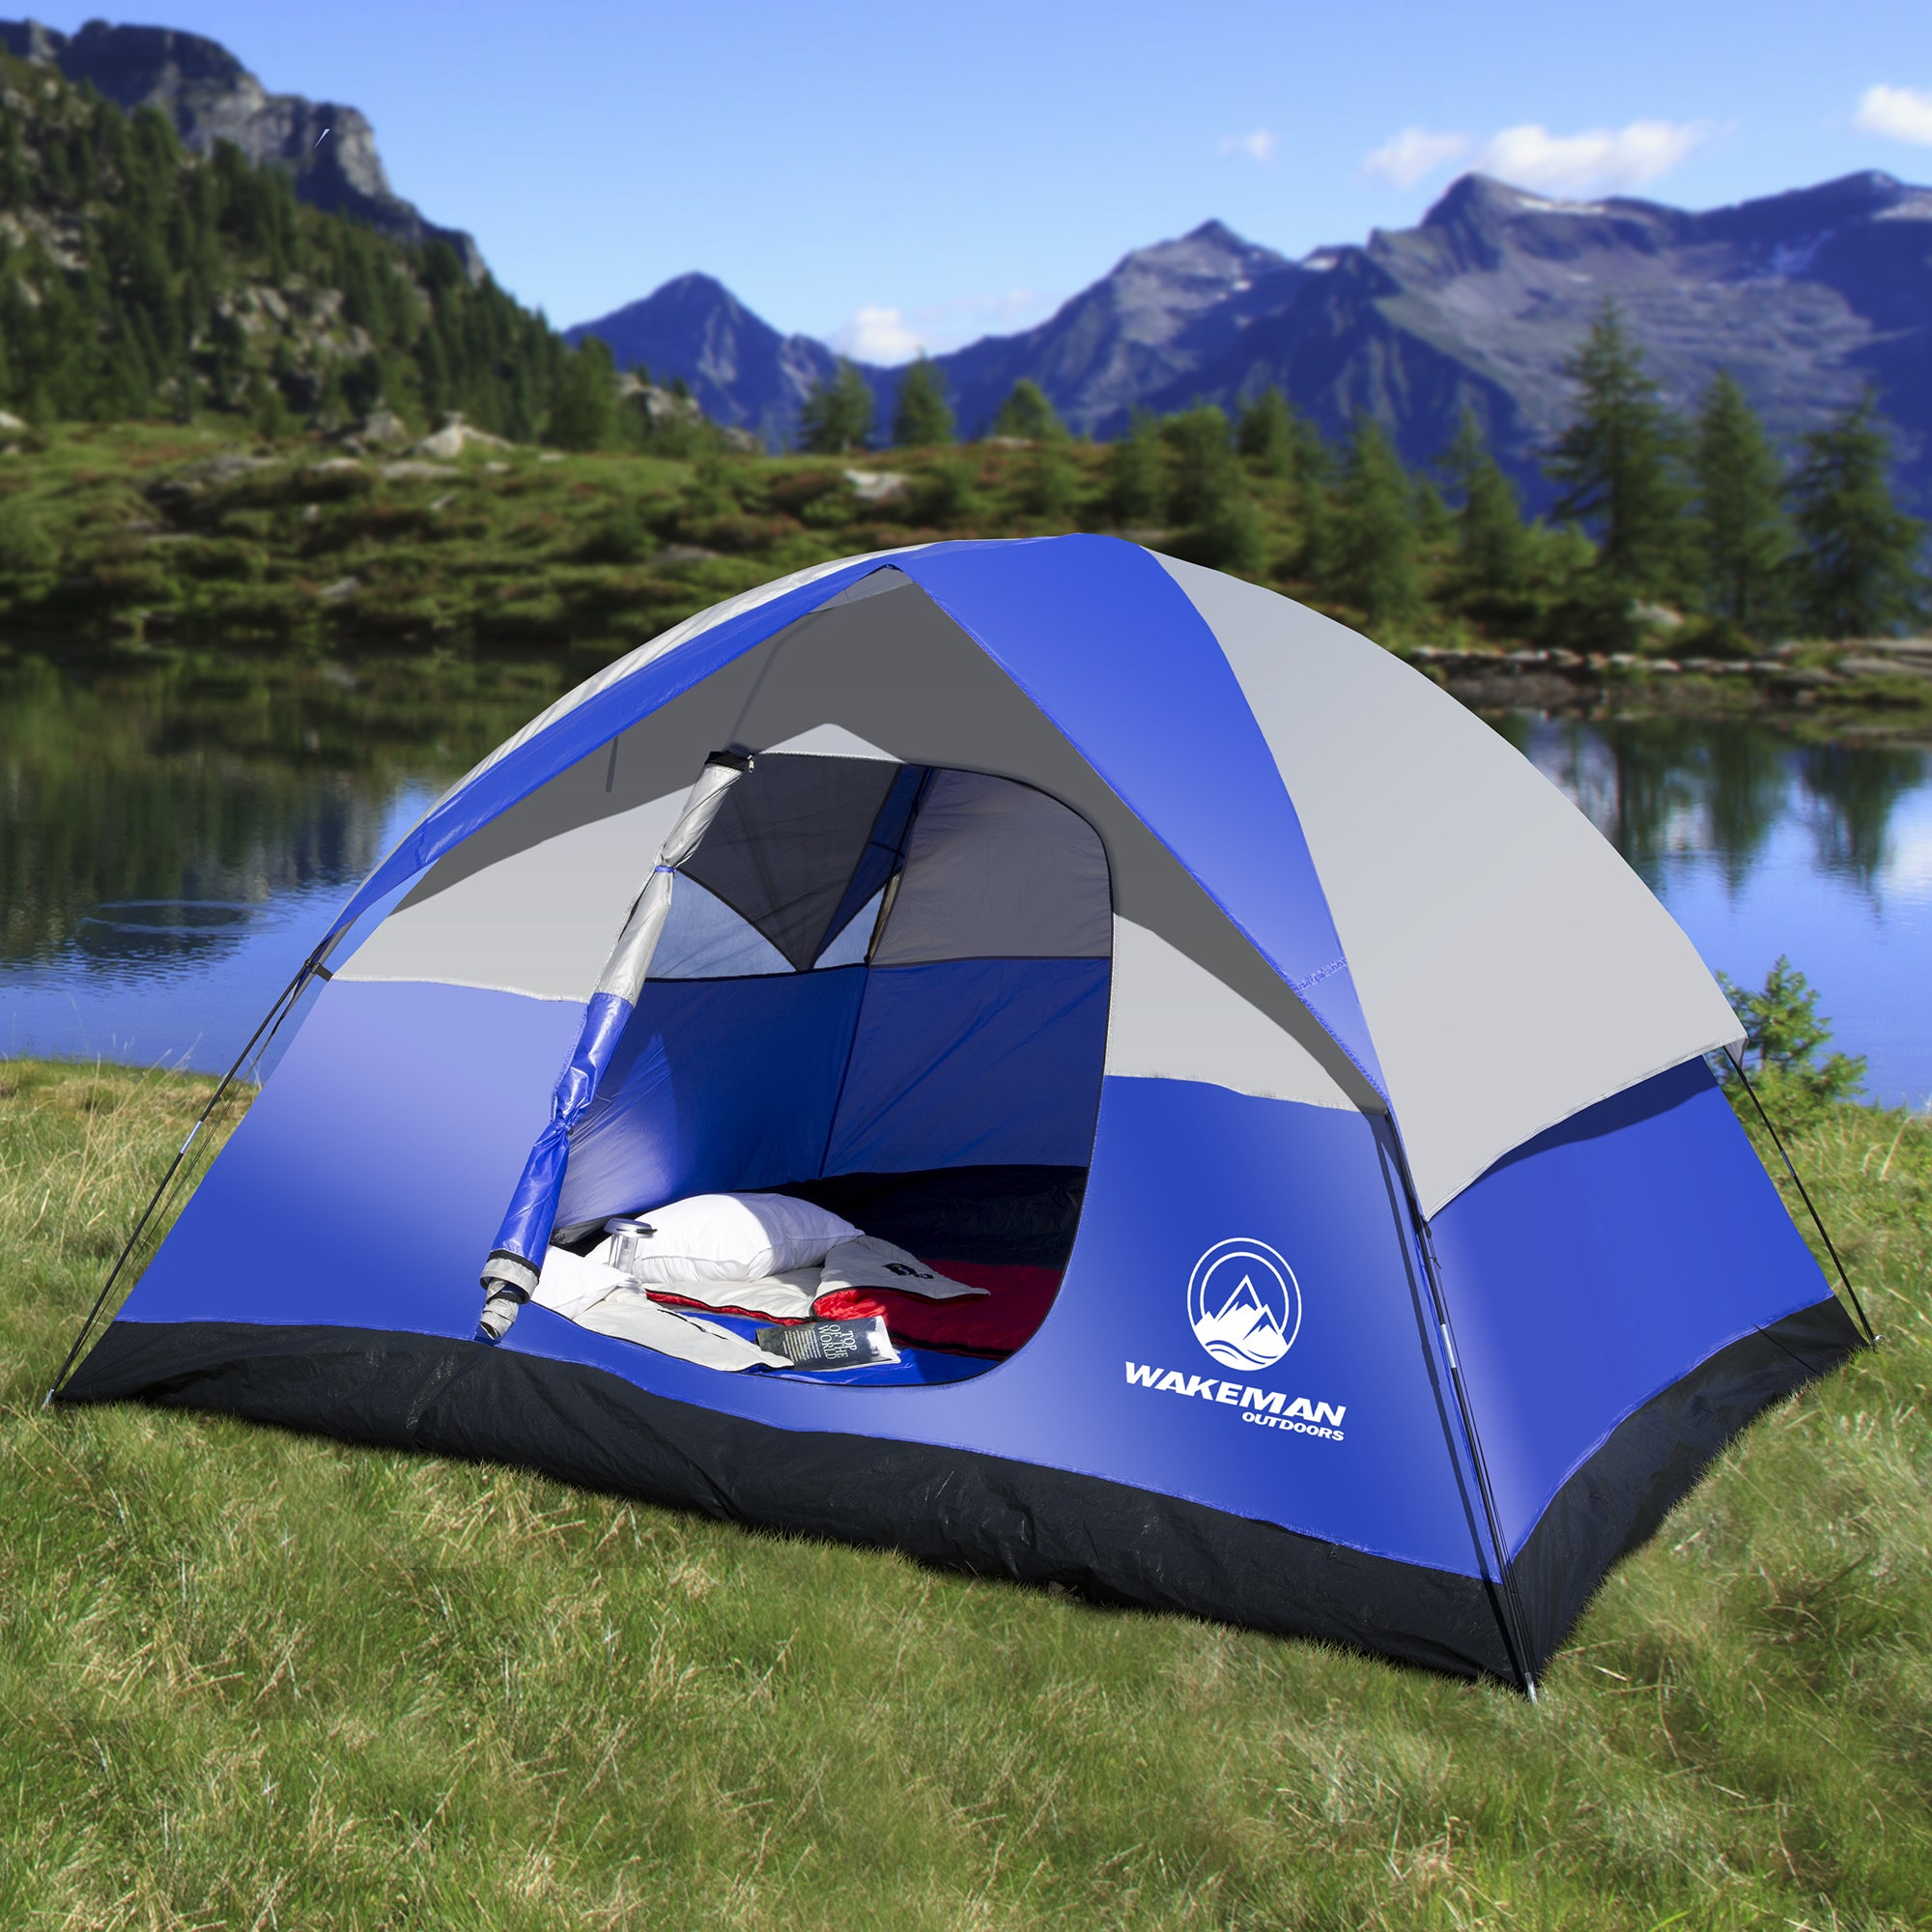 6 Person Tent Water Resistant Dome For Camping With Removable Rain Fly And Carry Bag Blue By Wakeman Outdoors